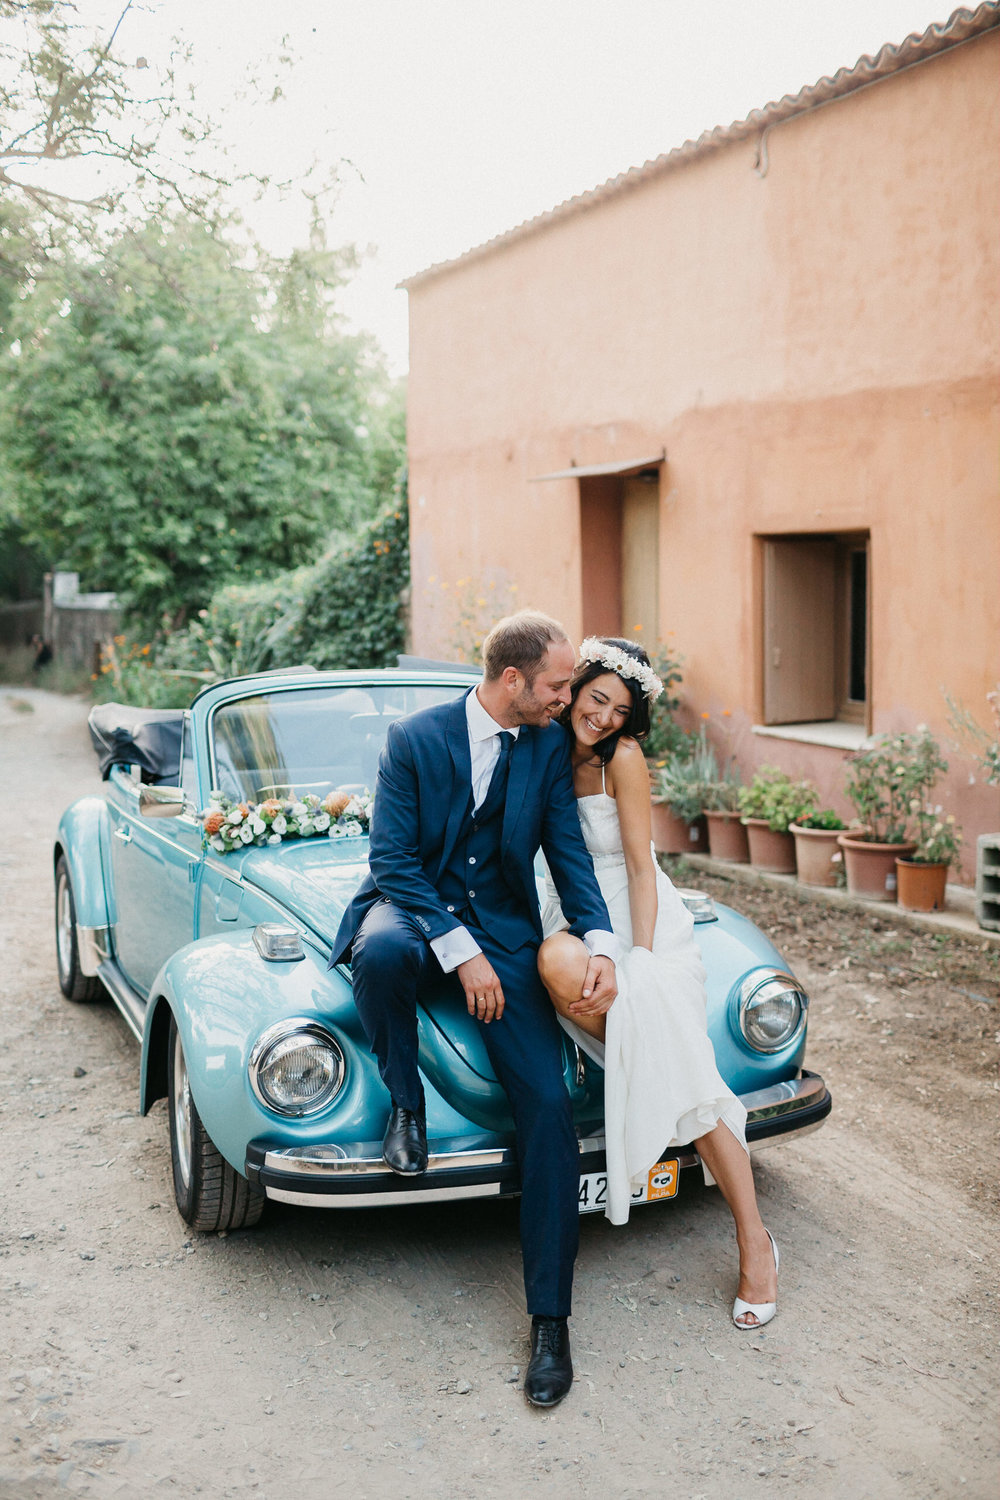 DAMARIS & ROGER | CRETE, GREECE